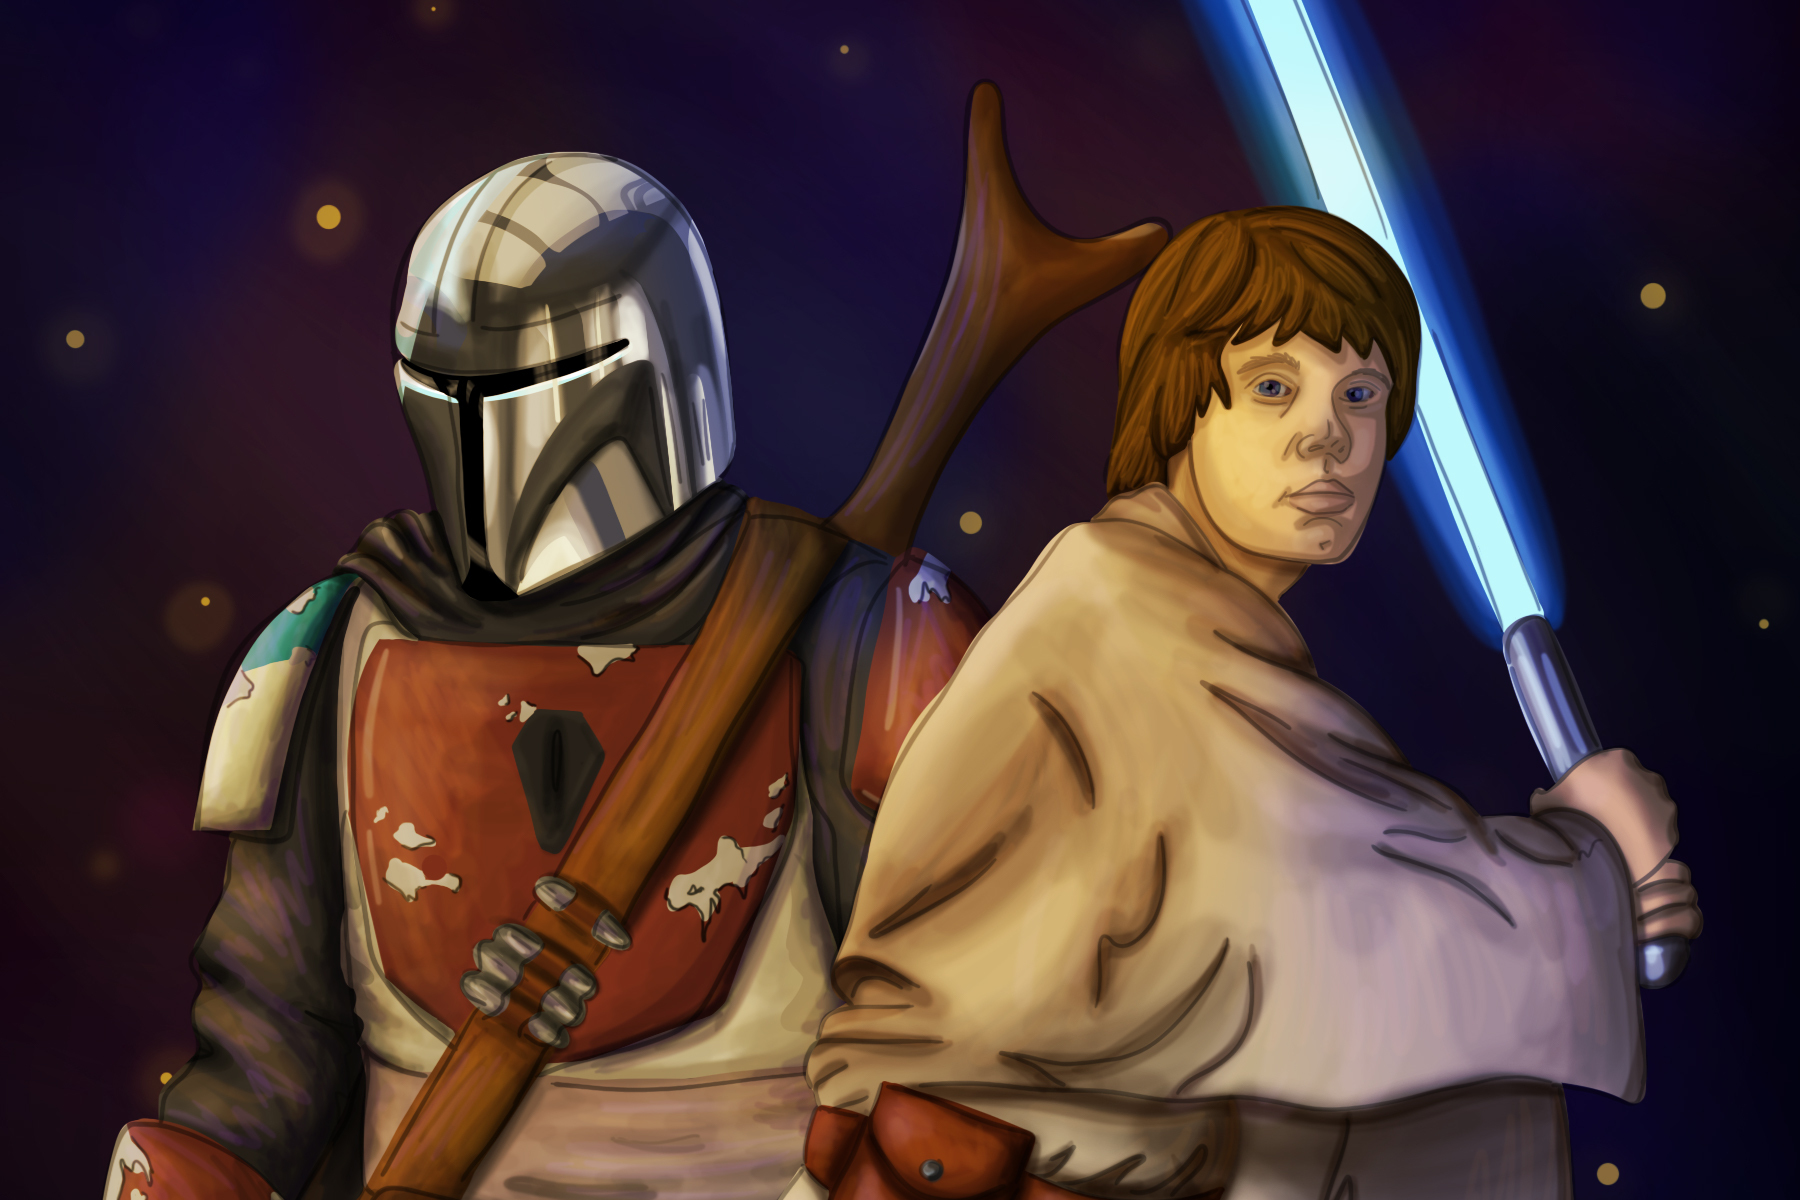 An illustration of a few main characters of Star Wars.